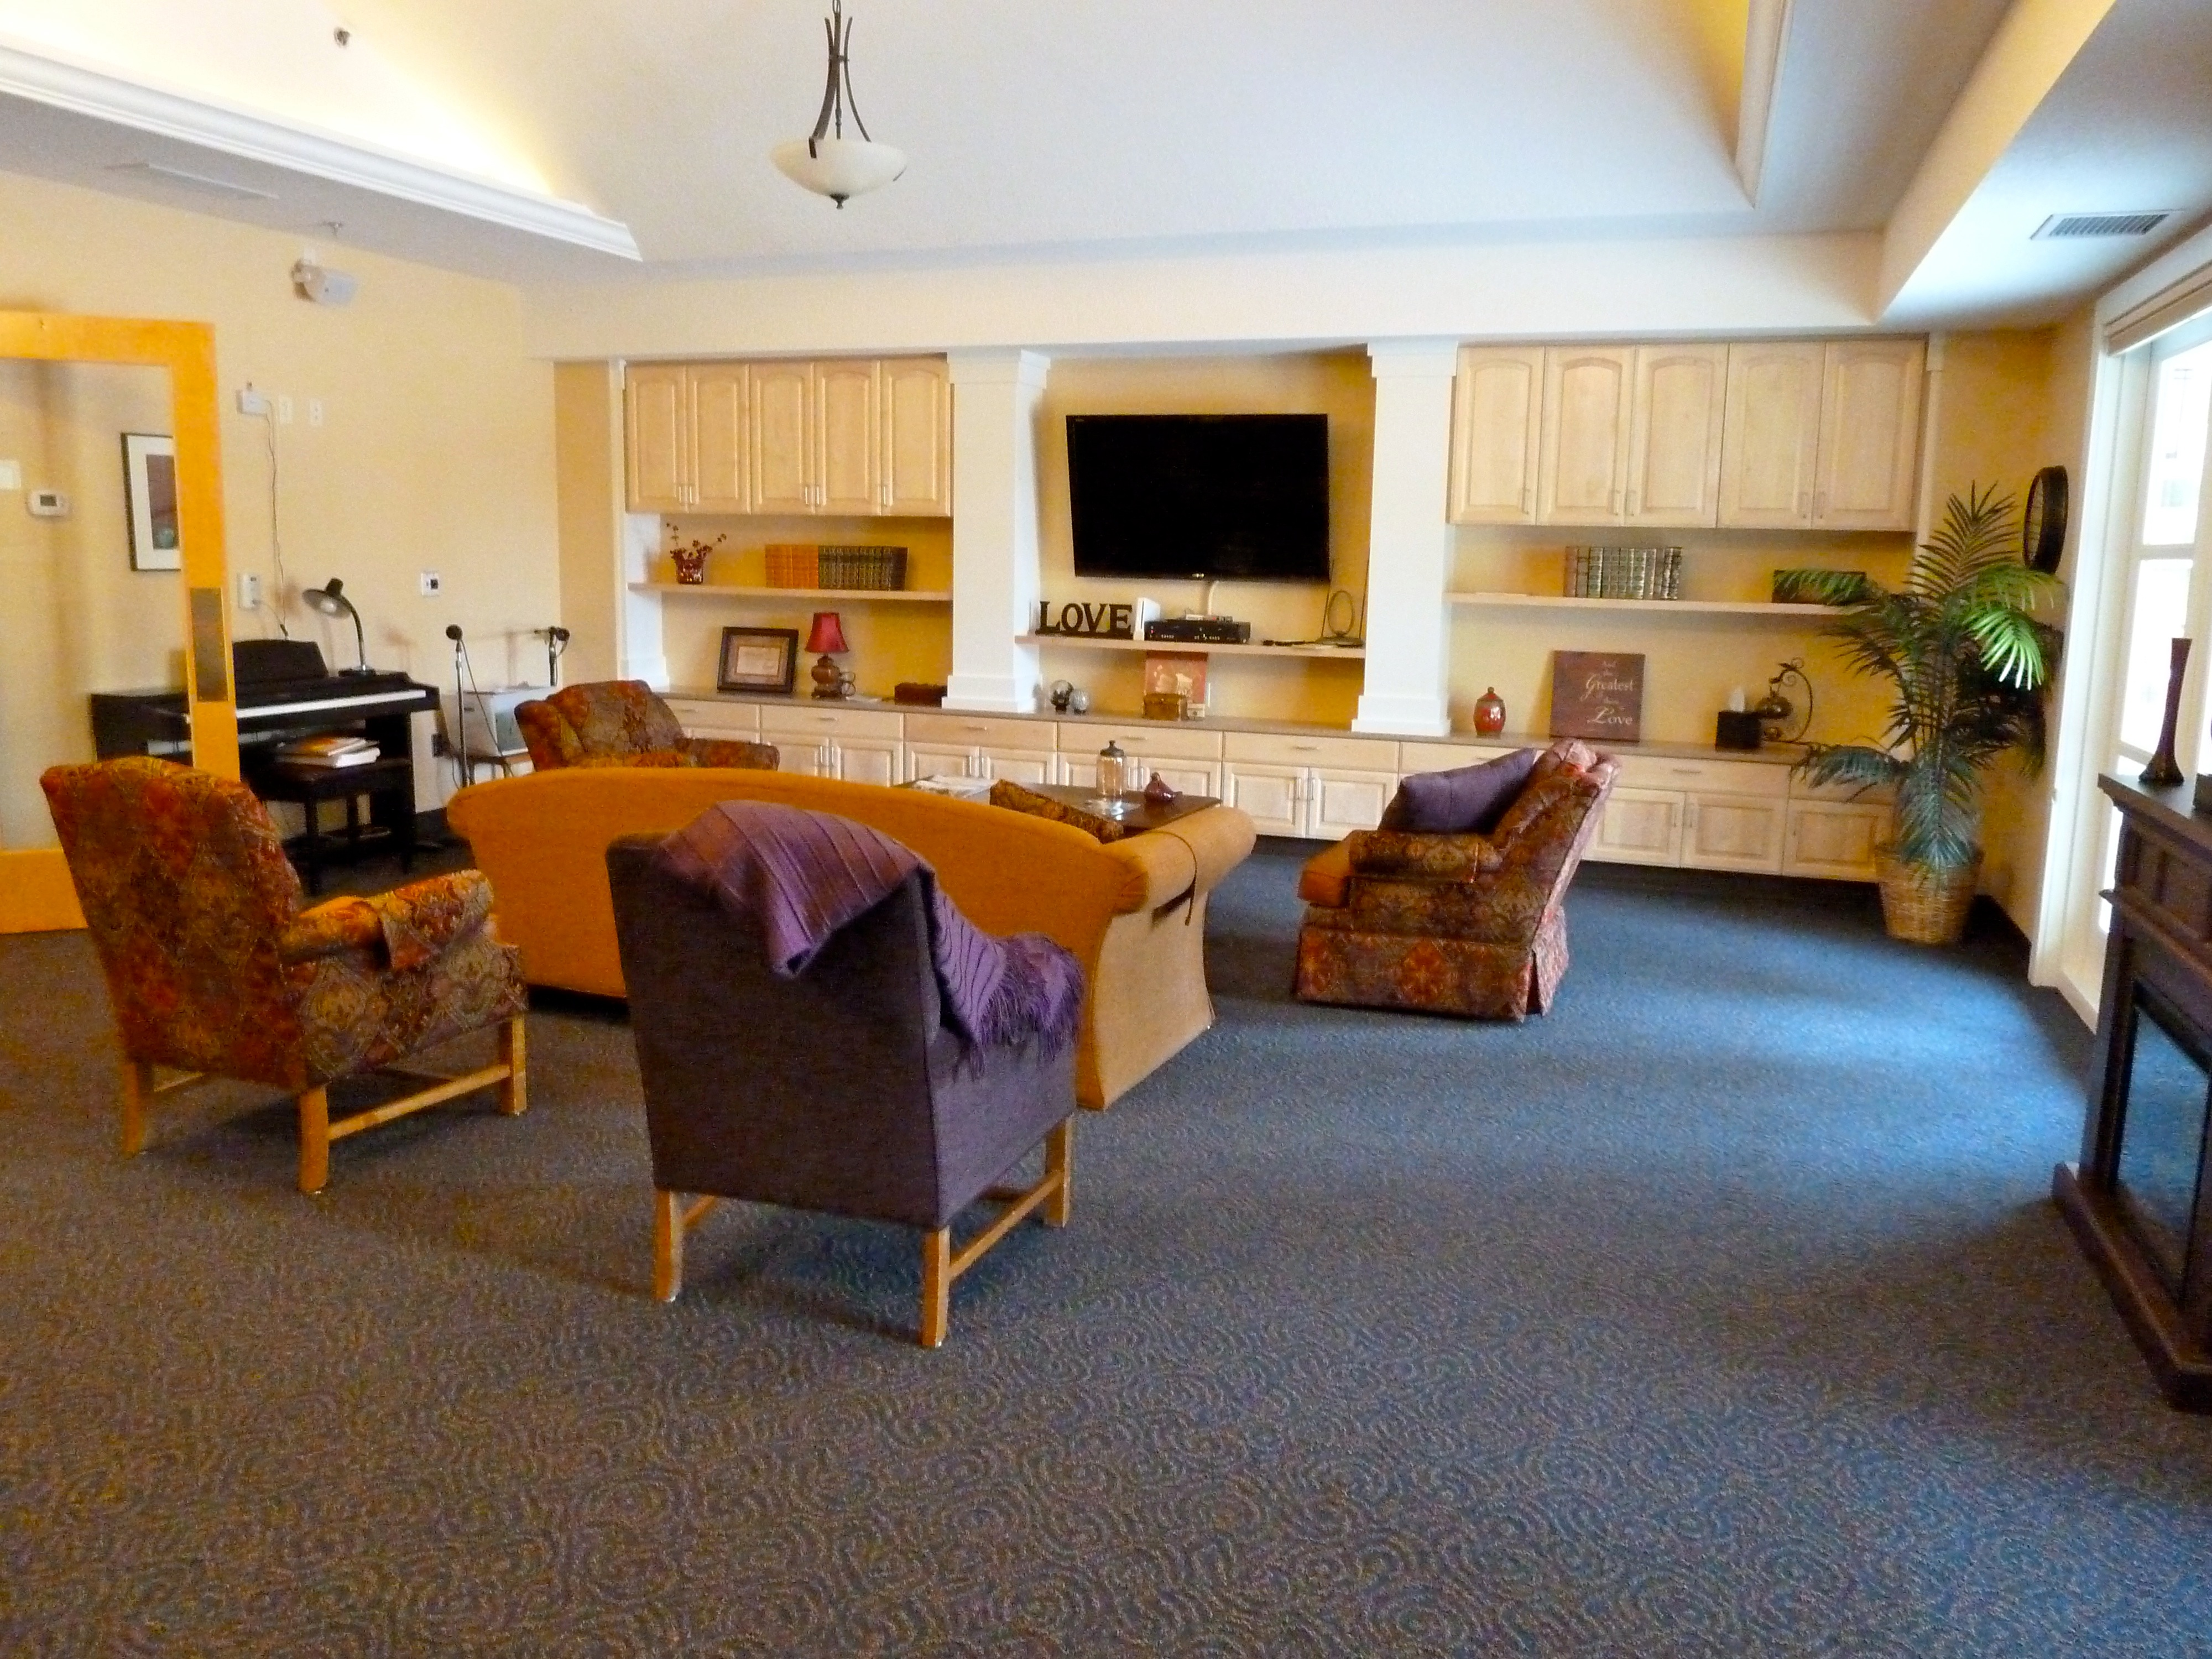 Building project completed wide horizon for The family room wheat ridge